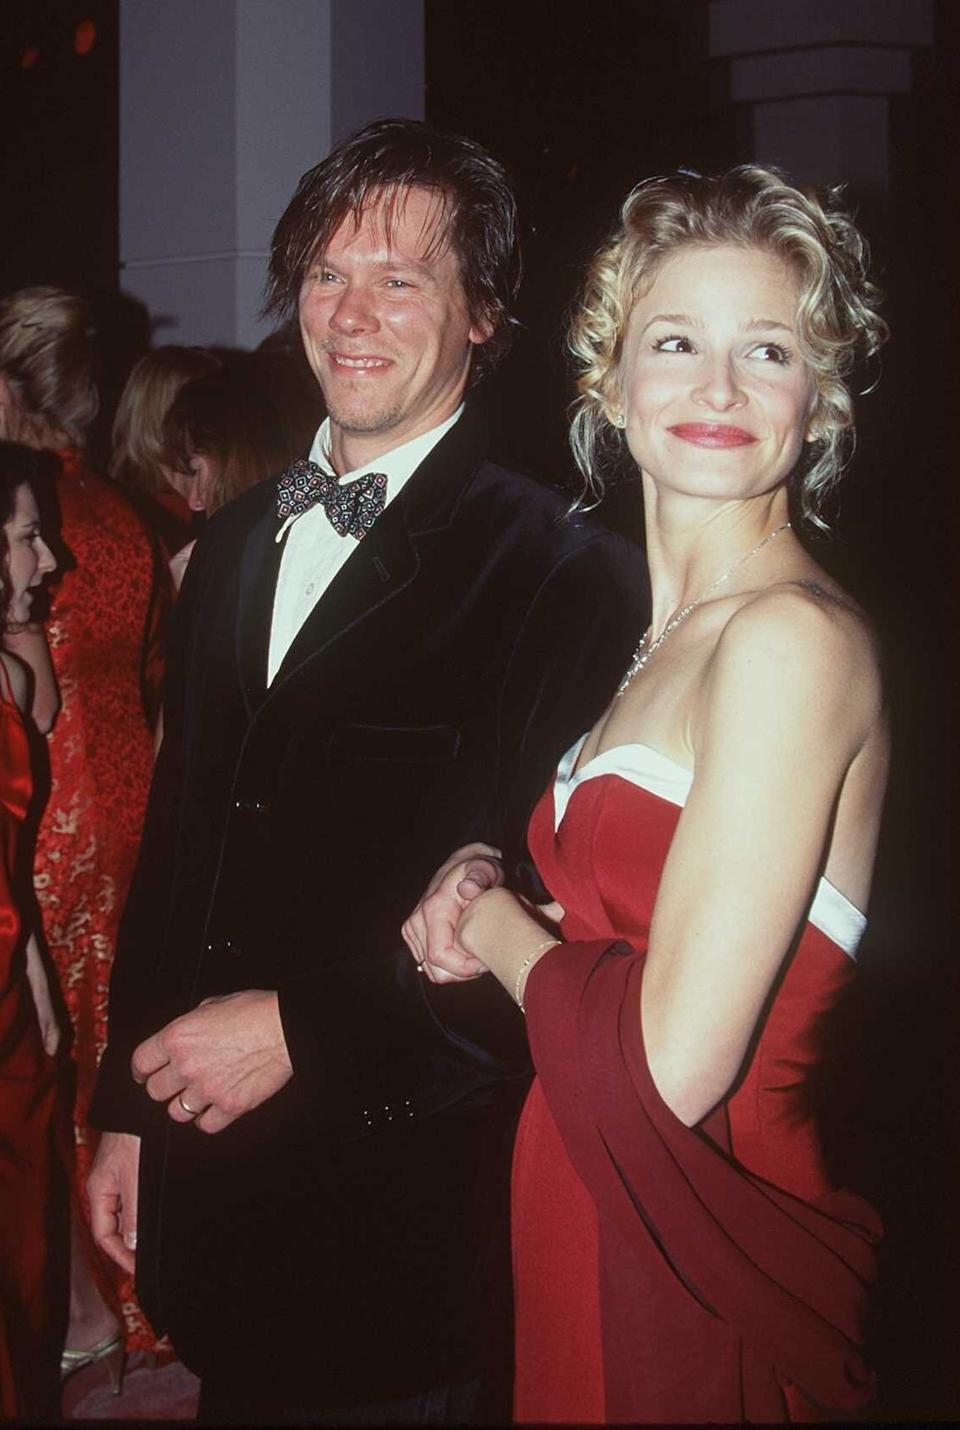 Bacon and Sedgwick at the Golden Globes.